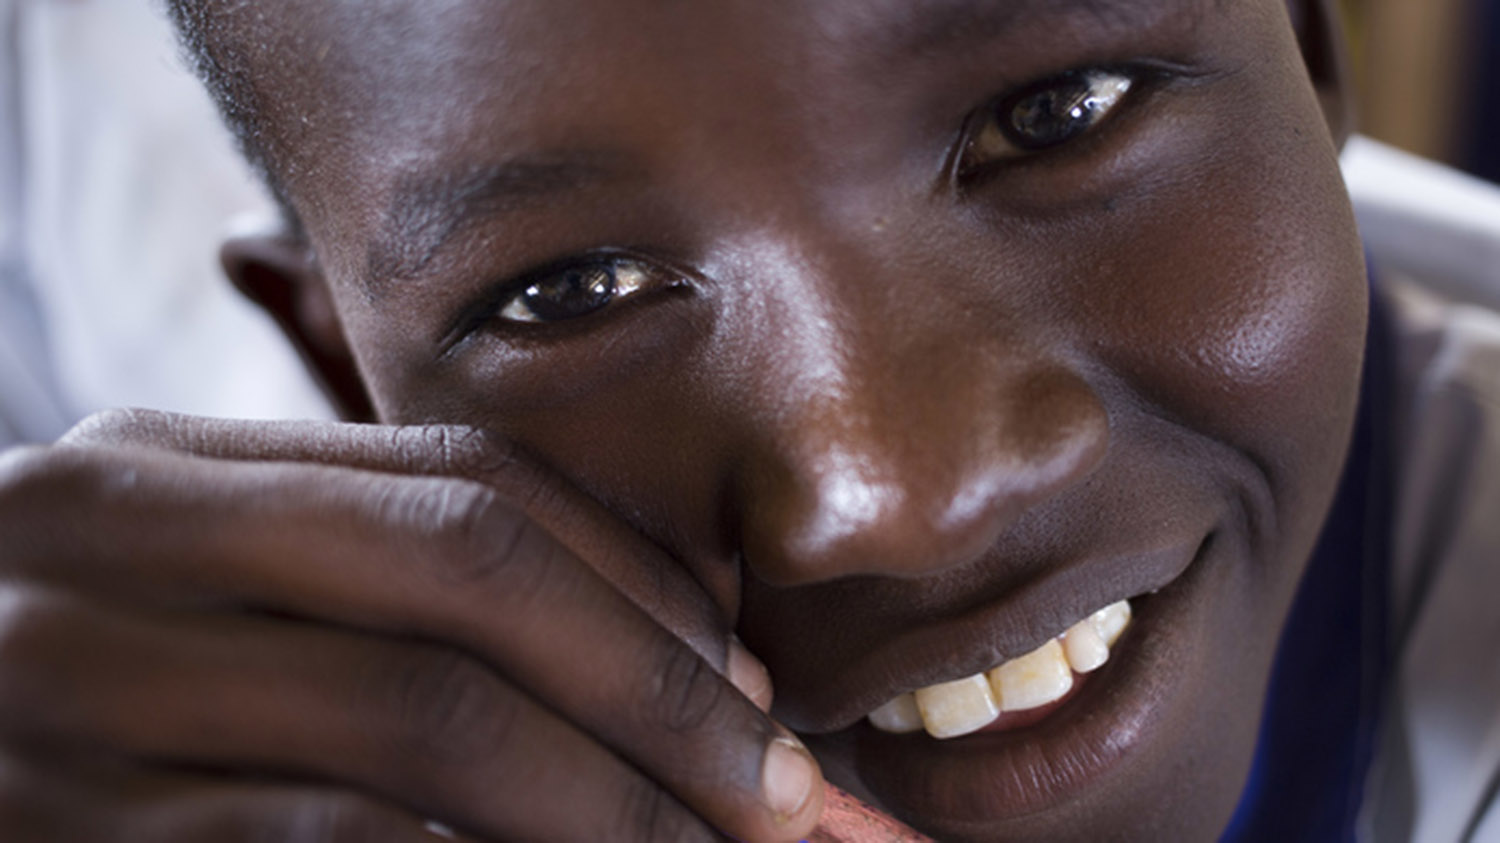 A close up photo of Leonard Kalokol, a 13 years old school boy whose class has lessons in facewashing to help eliminate the blinding eye disease trachoma in Kenya.